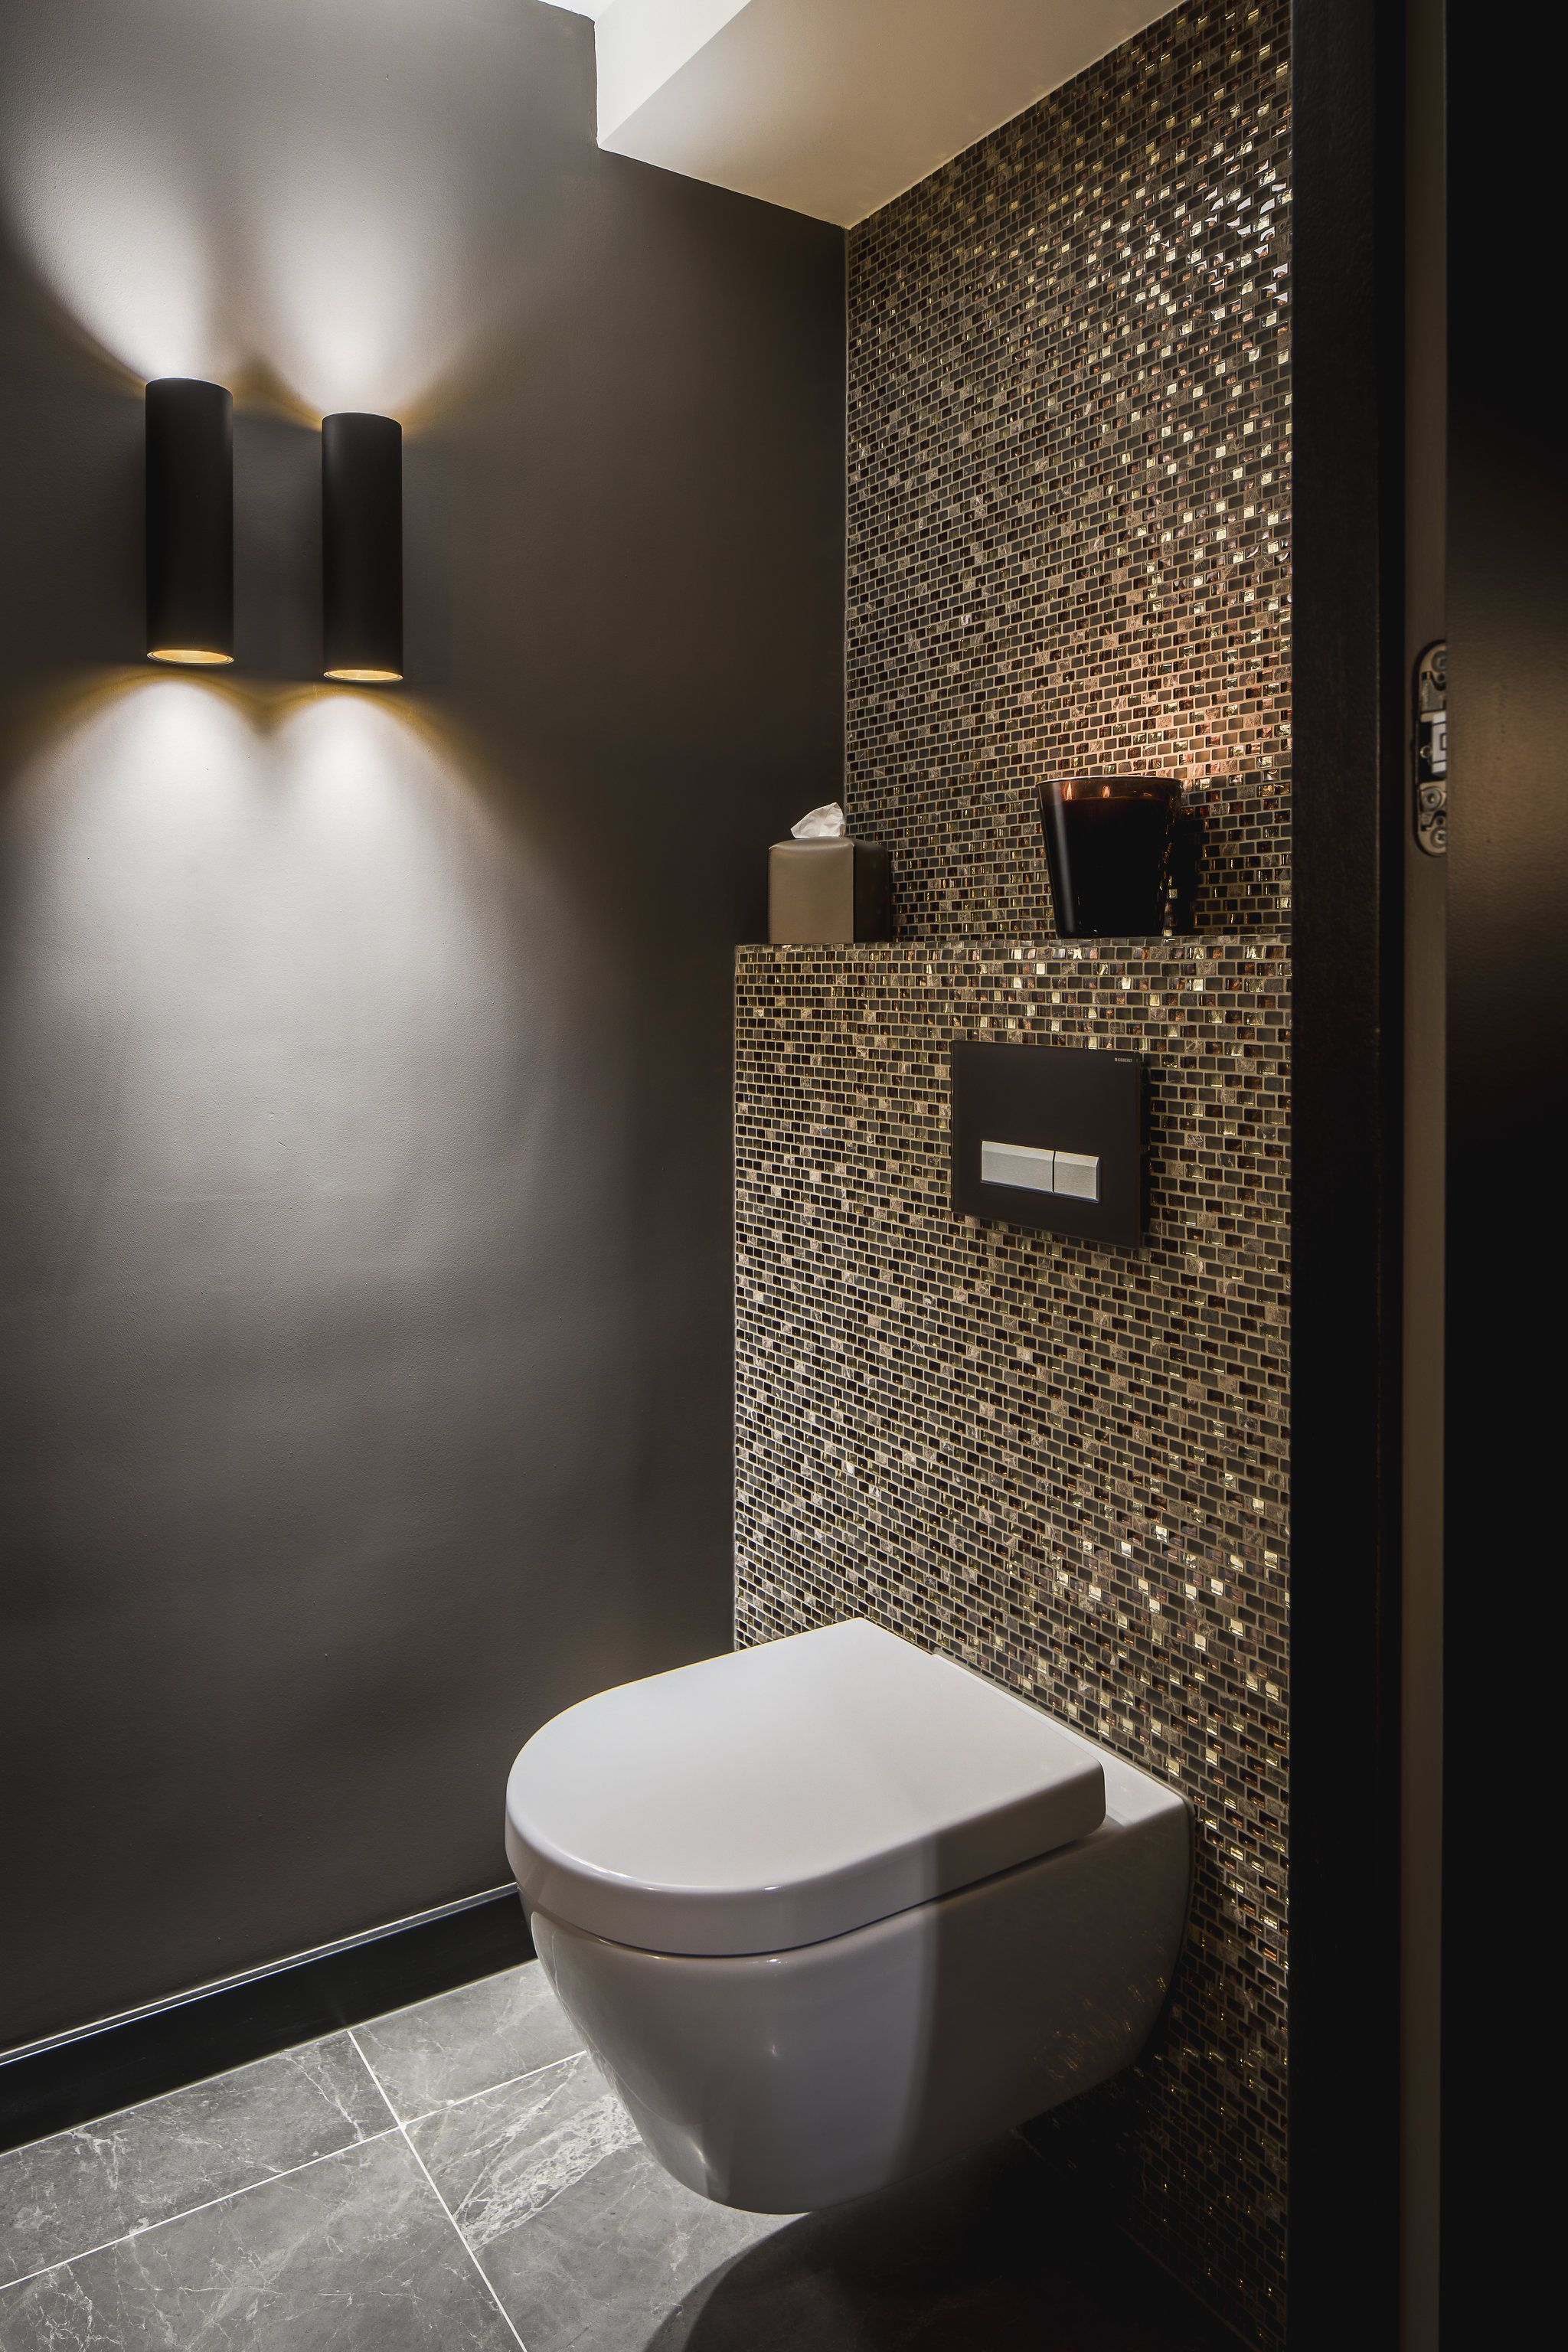 idee g ste wc mosaik glimmer dunkle w nde schimmer. Black Bedroom Furniture Sets. Home Design Ideas